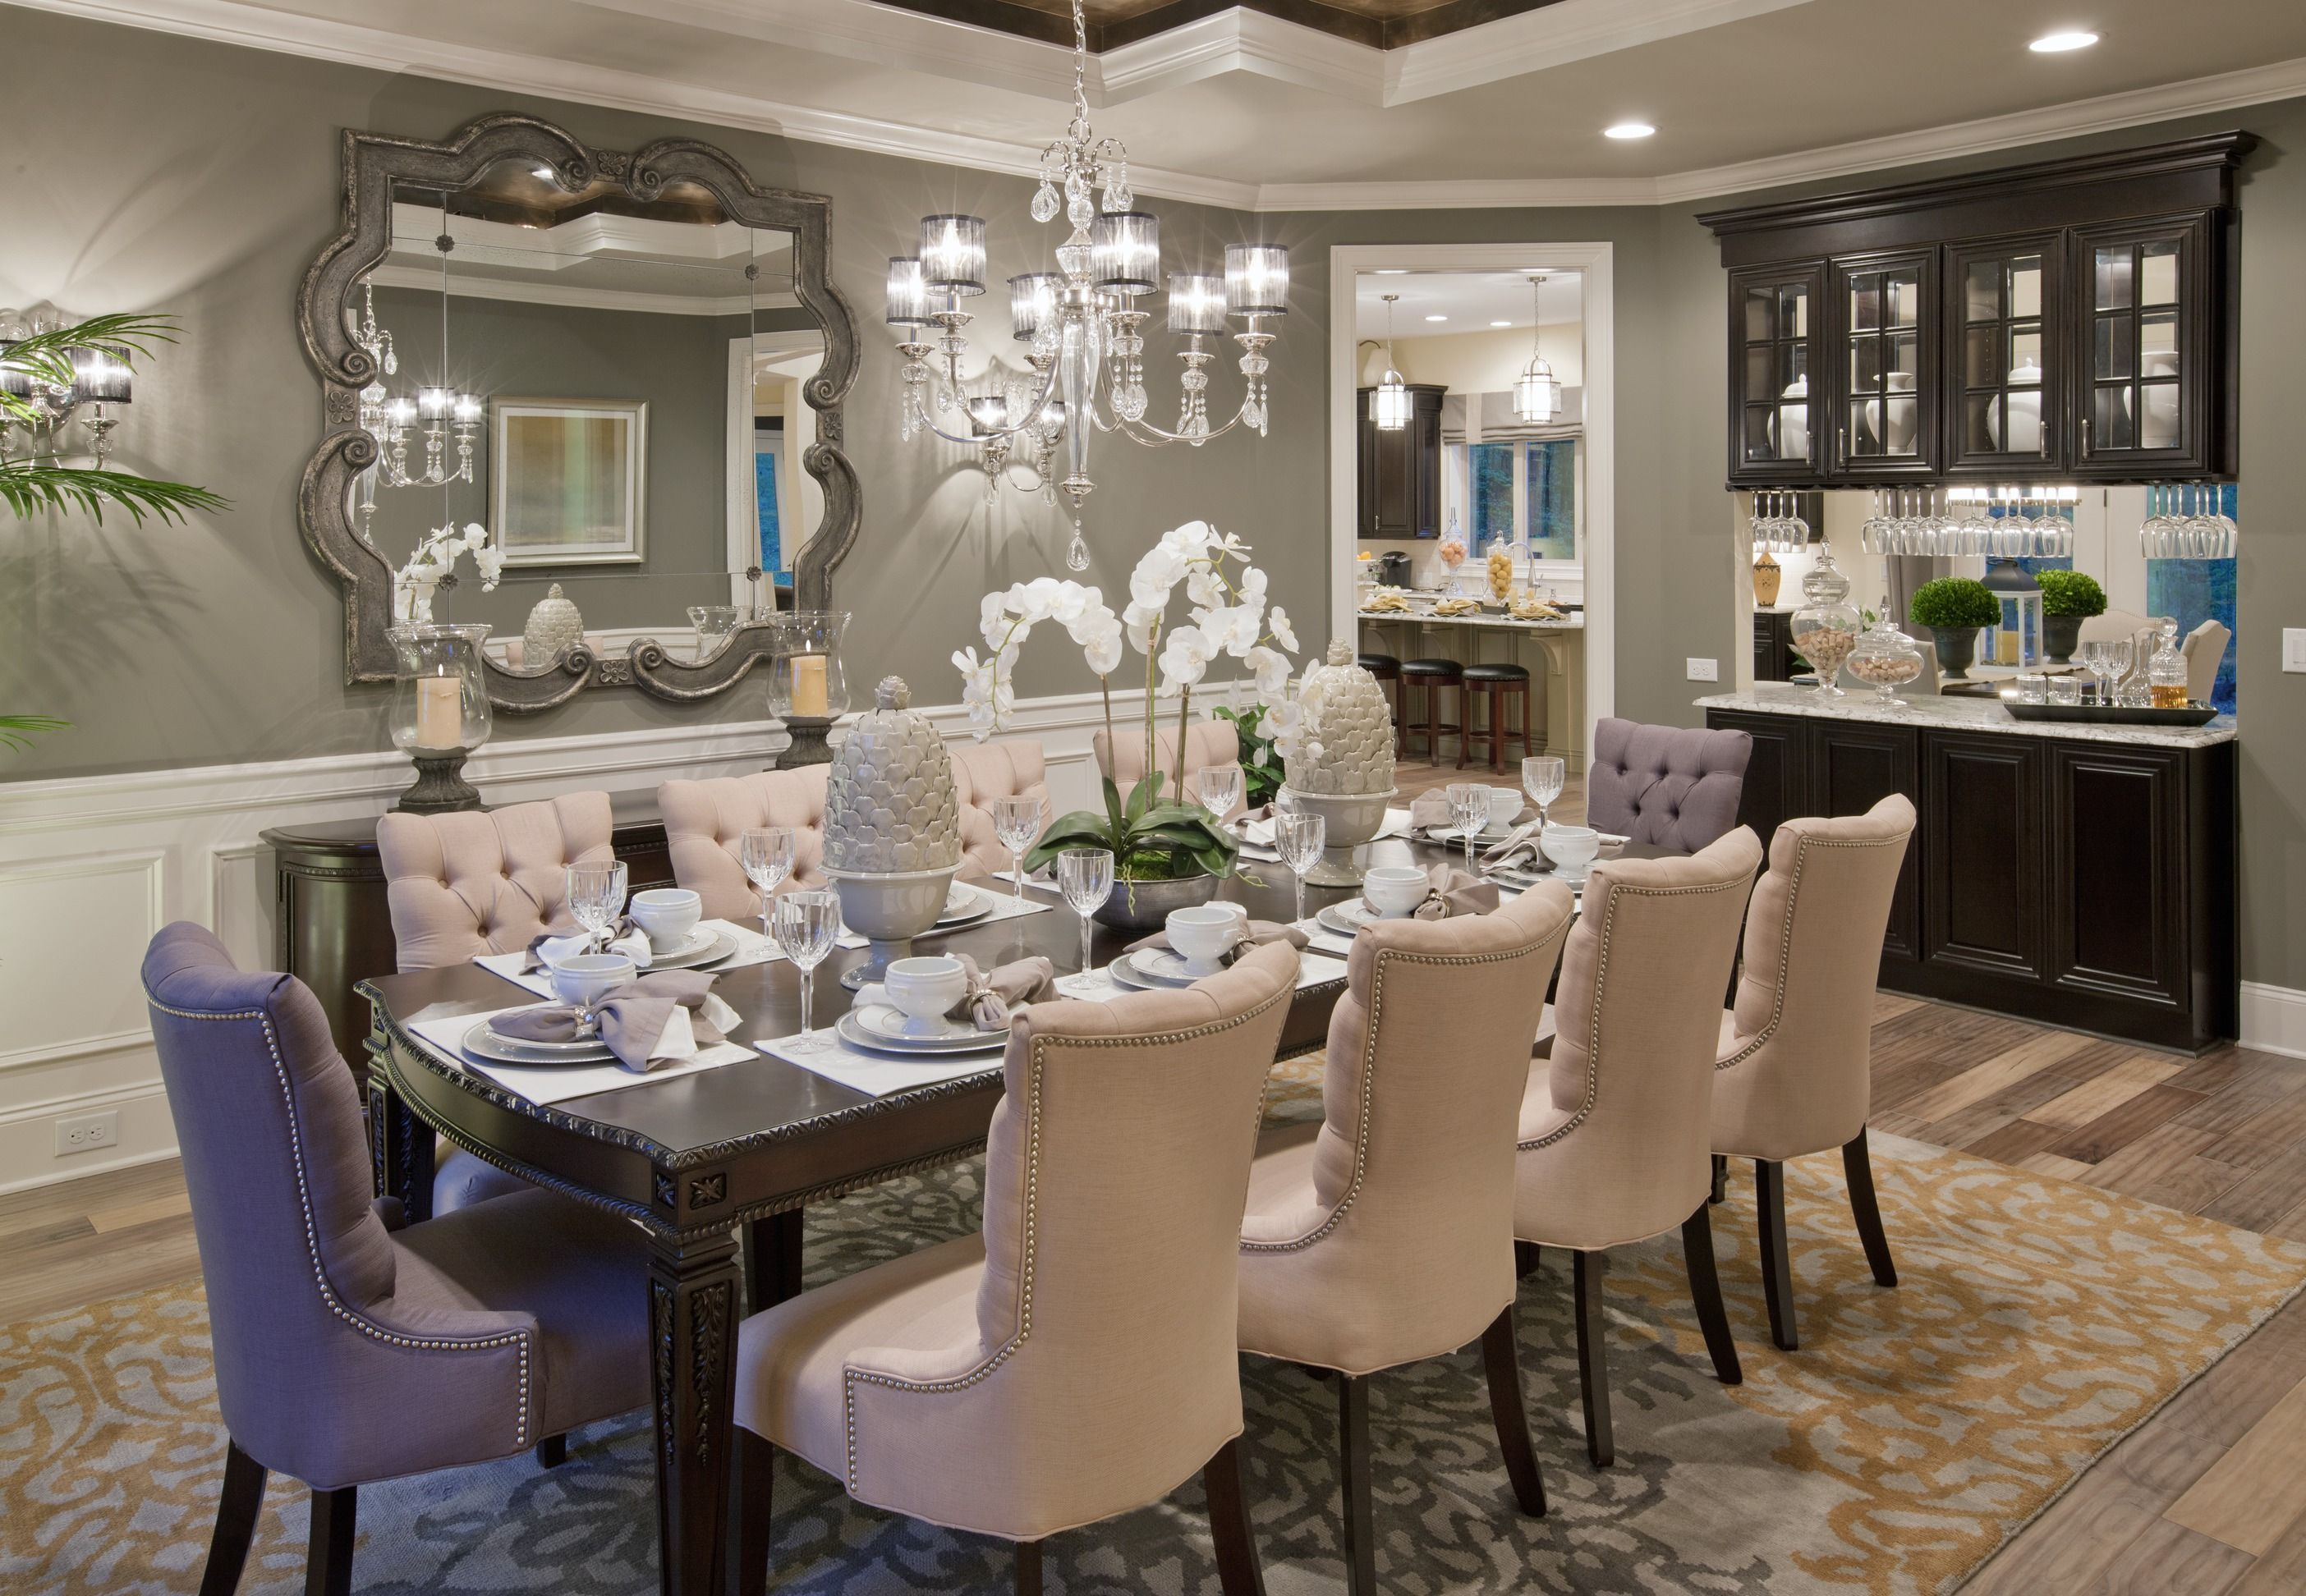 Cook An Elegant Dinner For Friends And Family At The Bromley Estates At Weddington In Weddington N C Luxury Dining Room Elegant Dining Room Luxury Dining